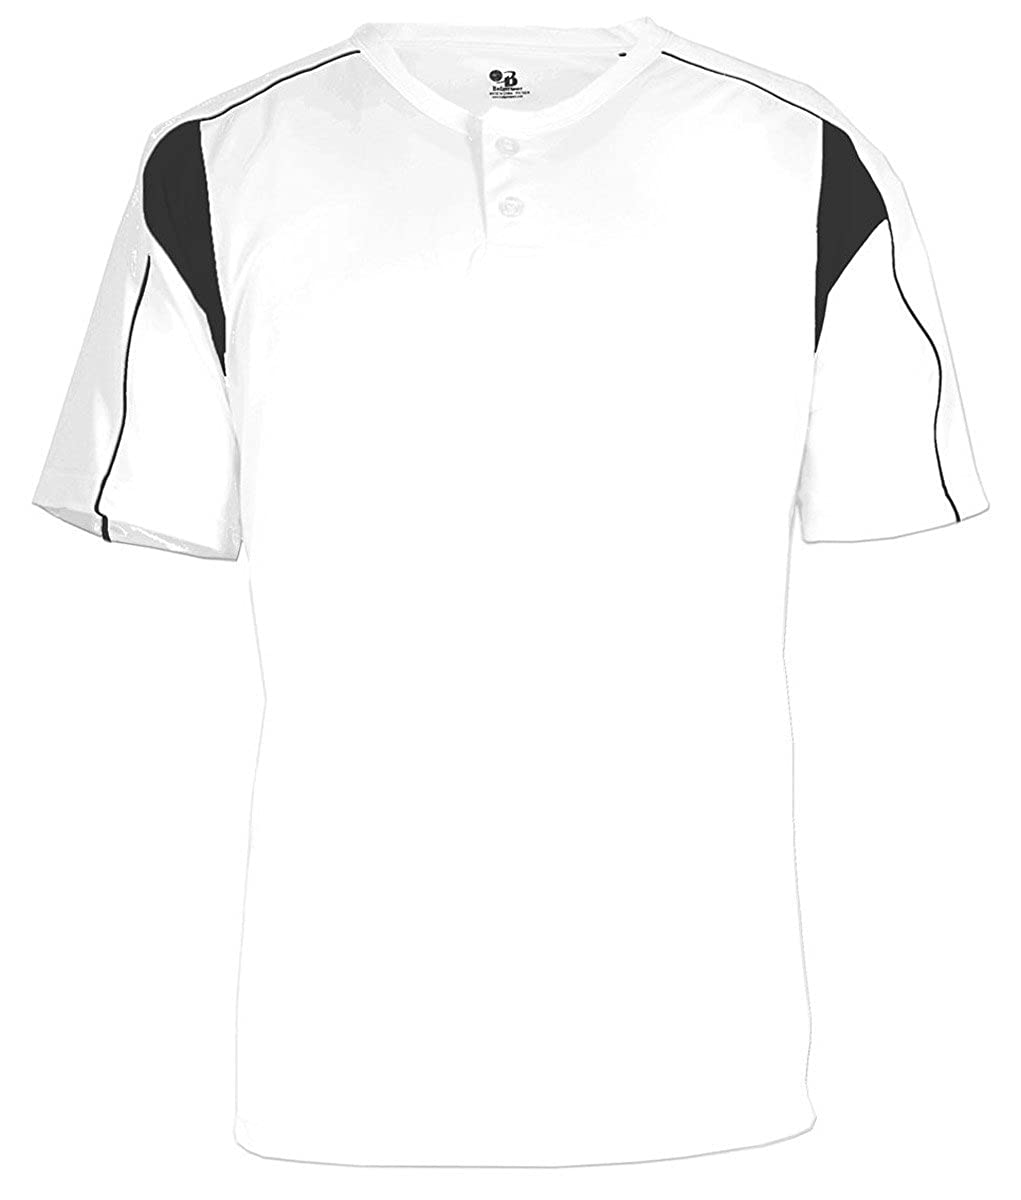 Badger Pro Placket Performance Contrast Henley T-Shirt